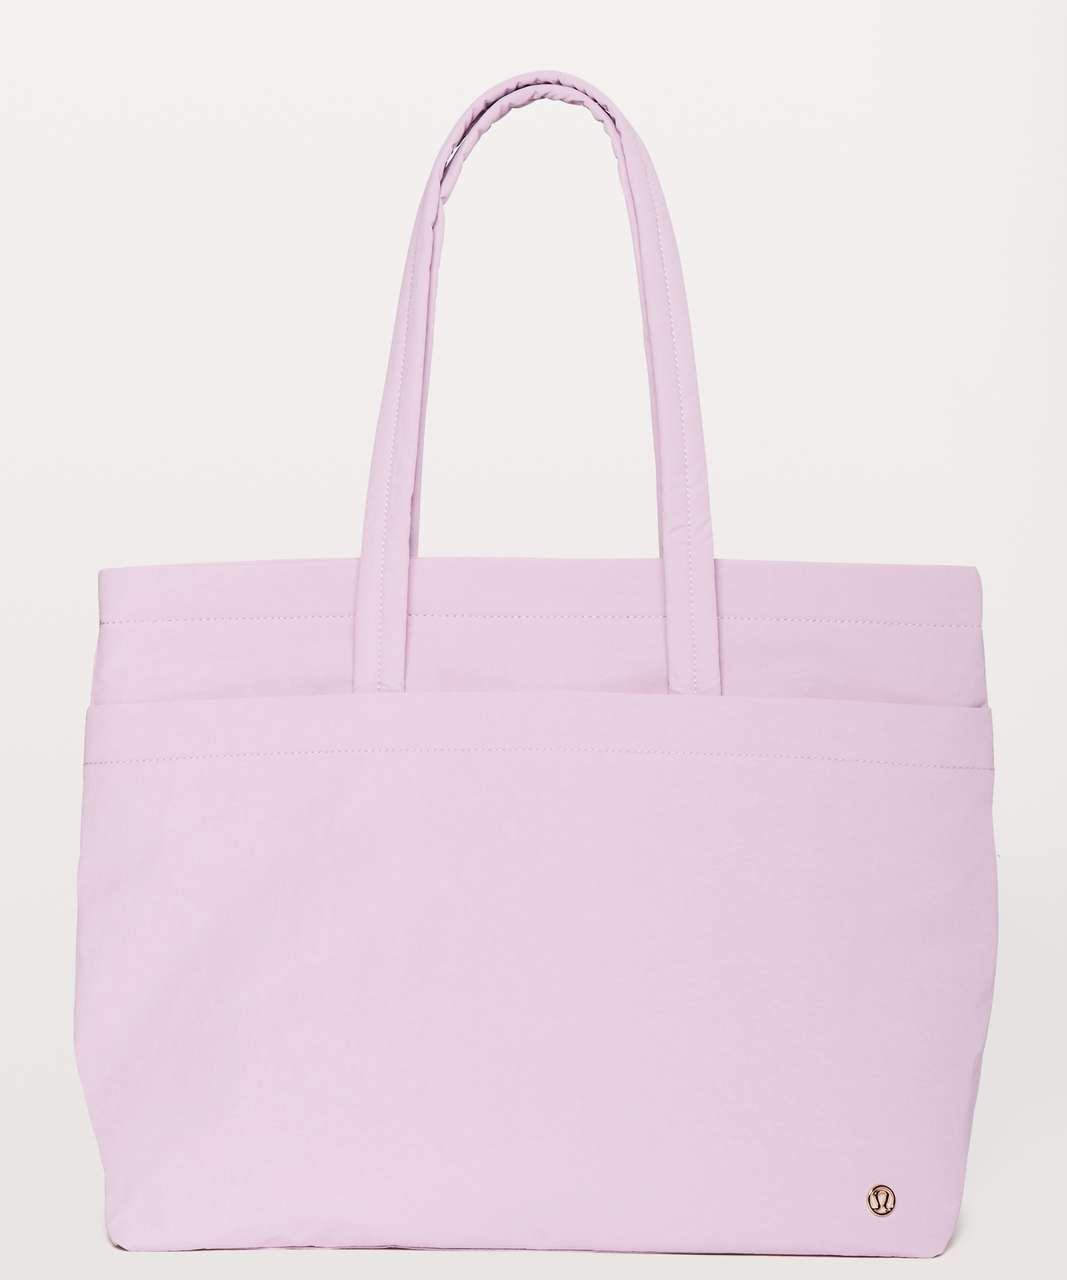 Lululemon On My Level Tote *Large 15L - Antoinette